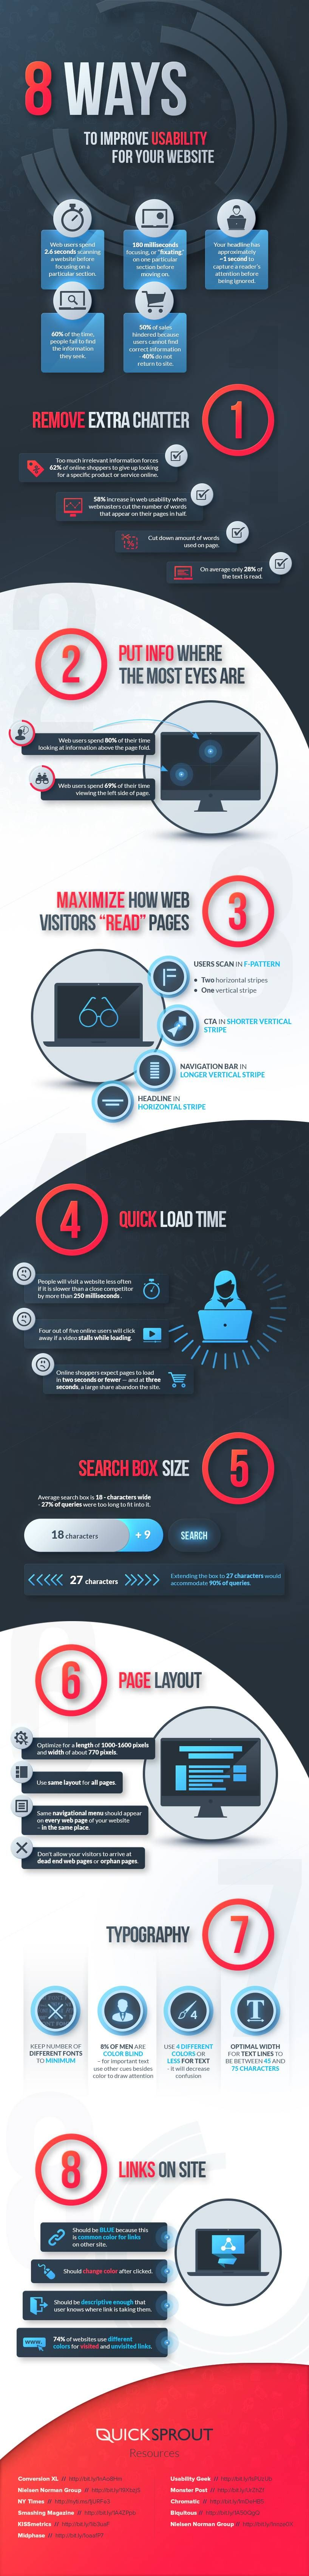 8 Ways To Improve The Usability Of Your Website Infographic Web Design Web Development Design Web Design Tips